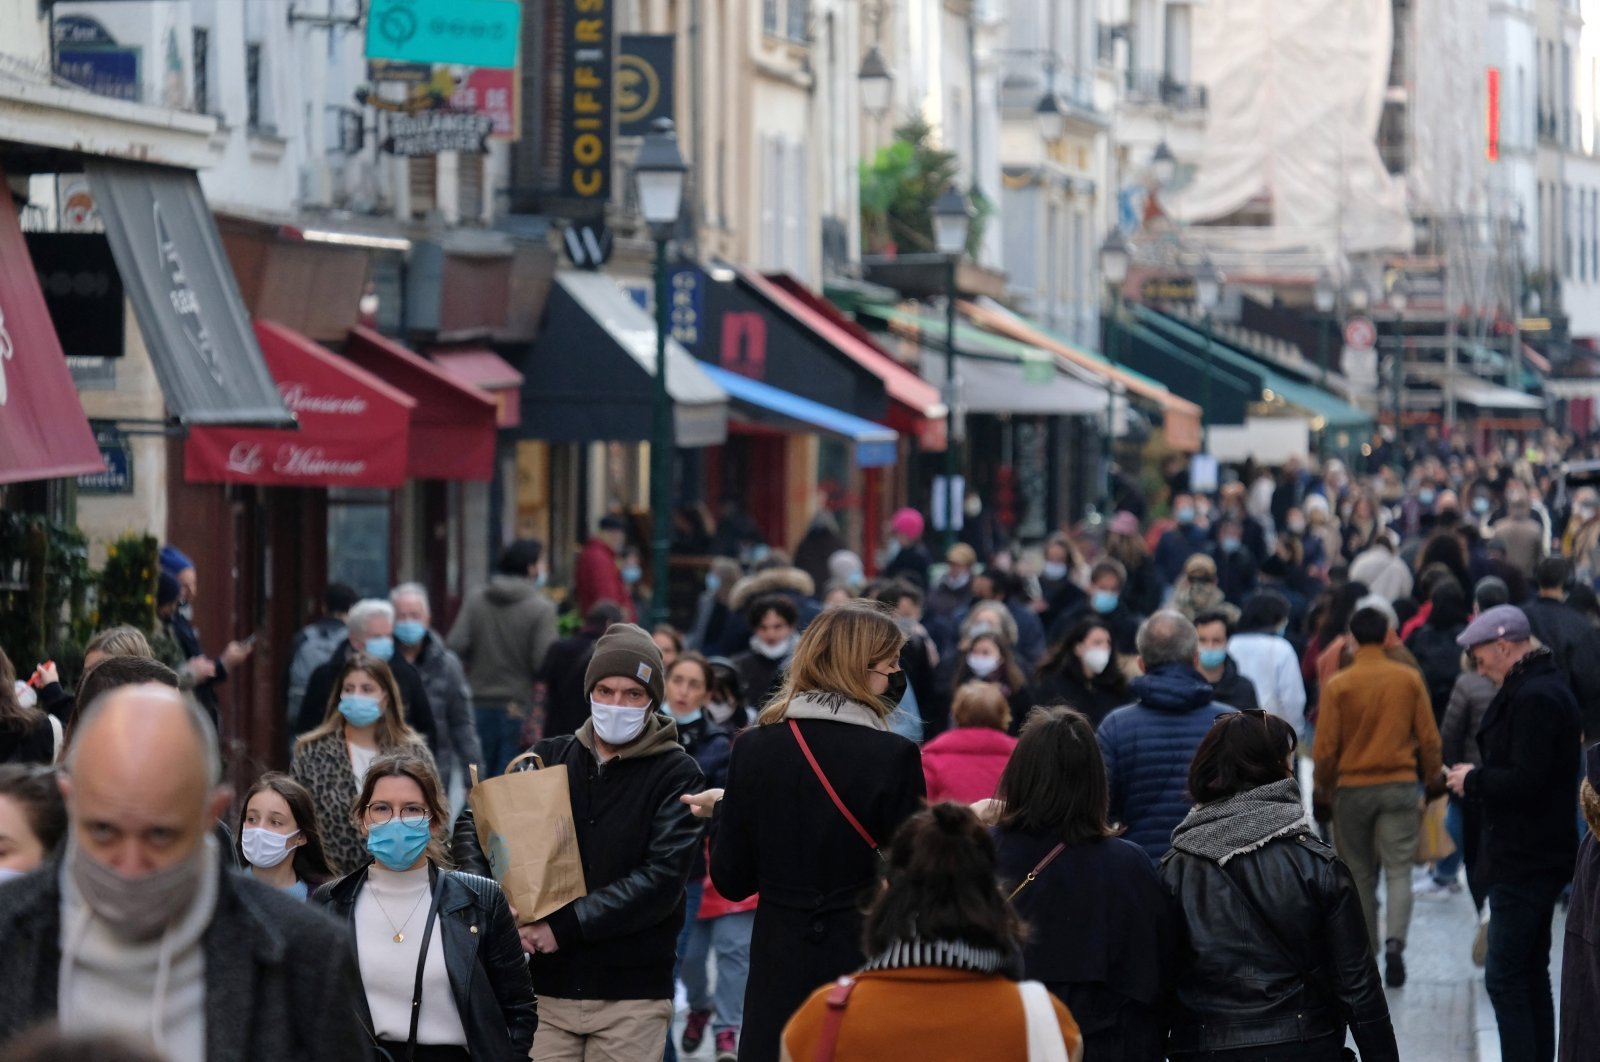 A crowd of people walk through a shopping strip on the first weekend of the third lockdown against the COVID-19 pandemic, as several parts of France enter a new partial lockdown. Paris, France, March 20, 2021. (Reuters Photo)